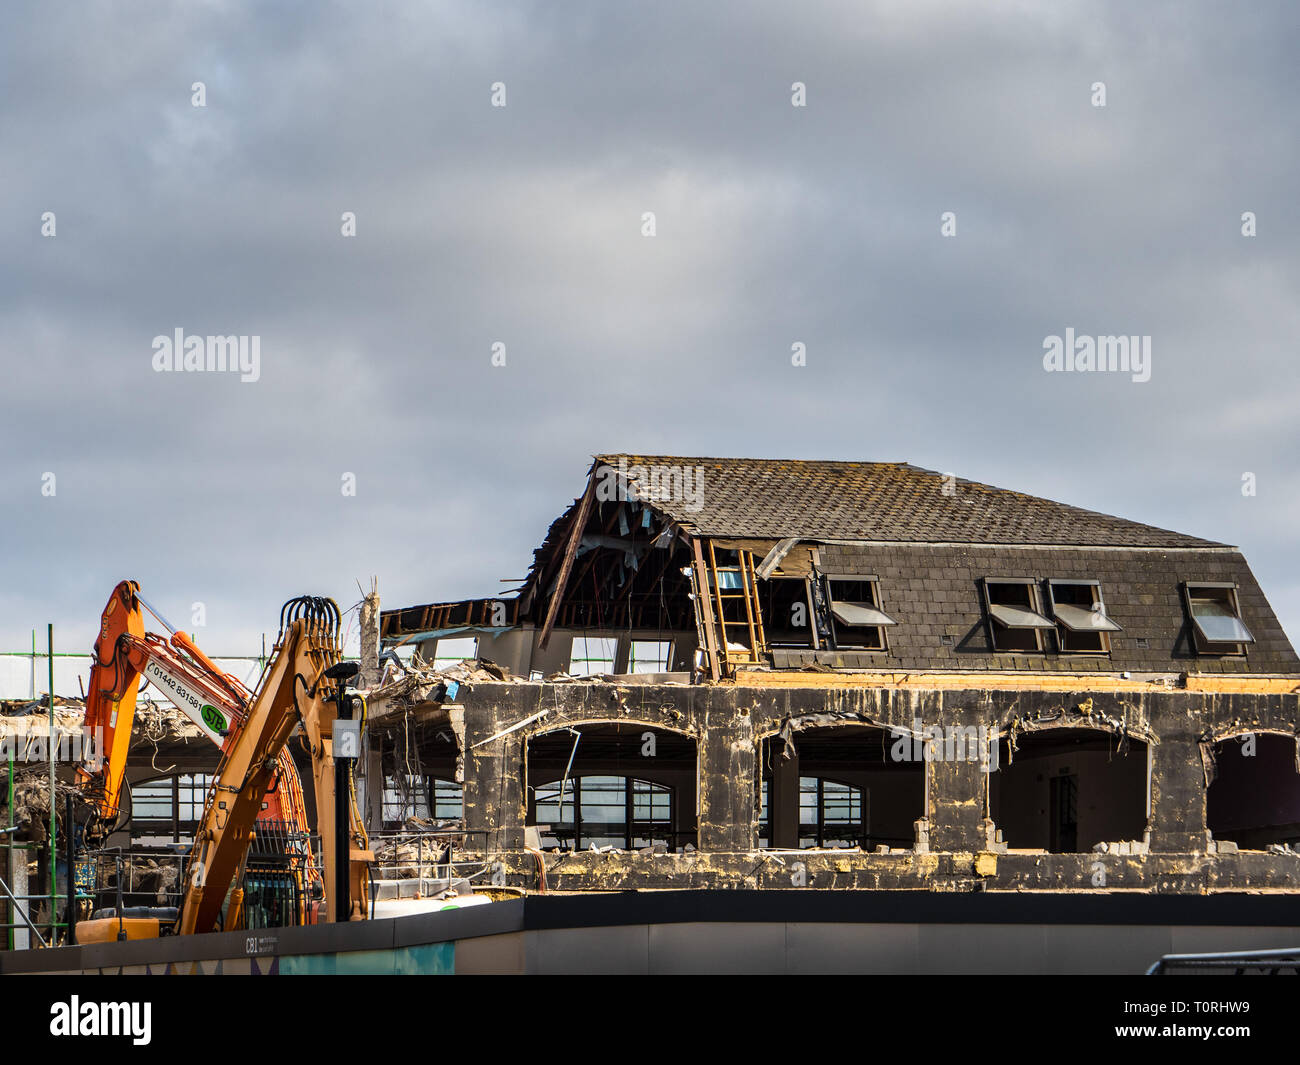 Demolition - old office building being demolished before redevelopment in Cambridge UK - Stock Image